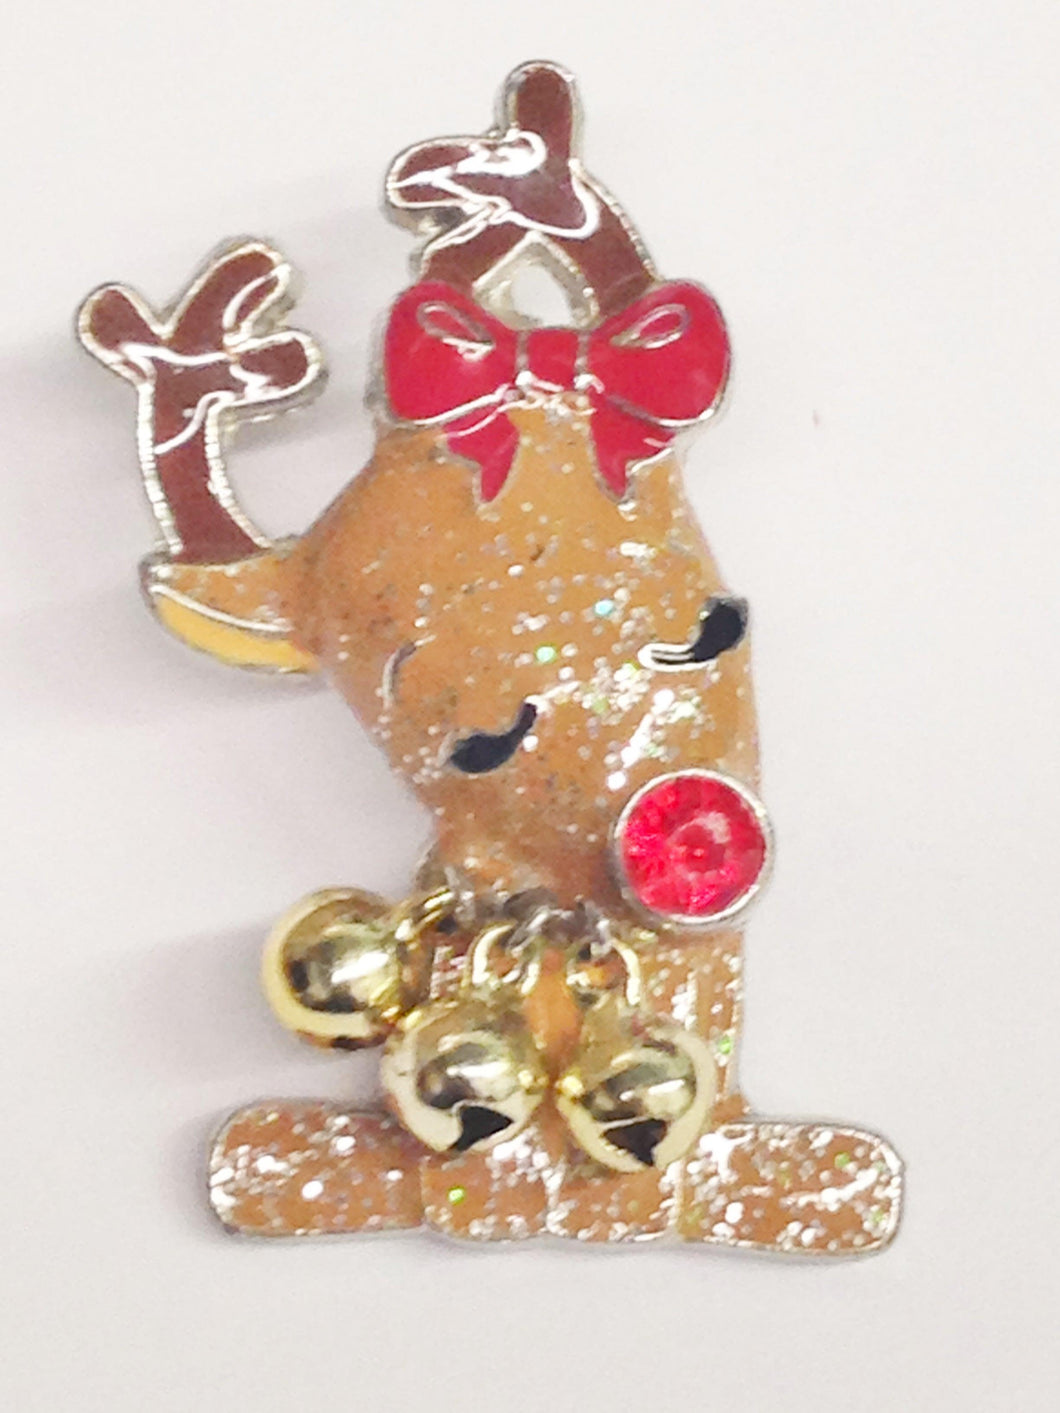 Vintage Rudolph The Red Nose Reindeer Brooch Pin With Bells www.hersandhistreasures.com